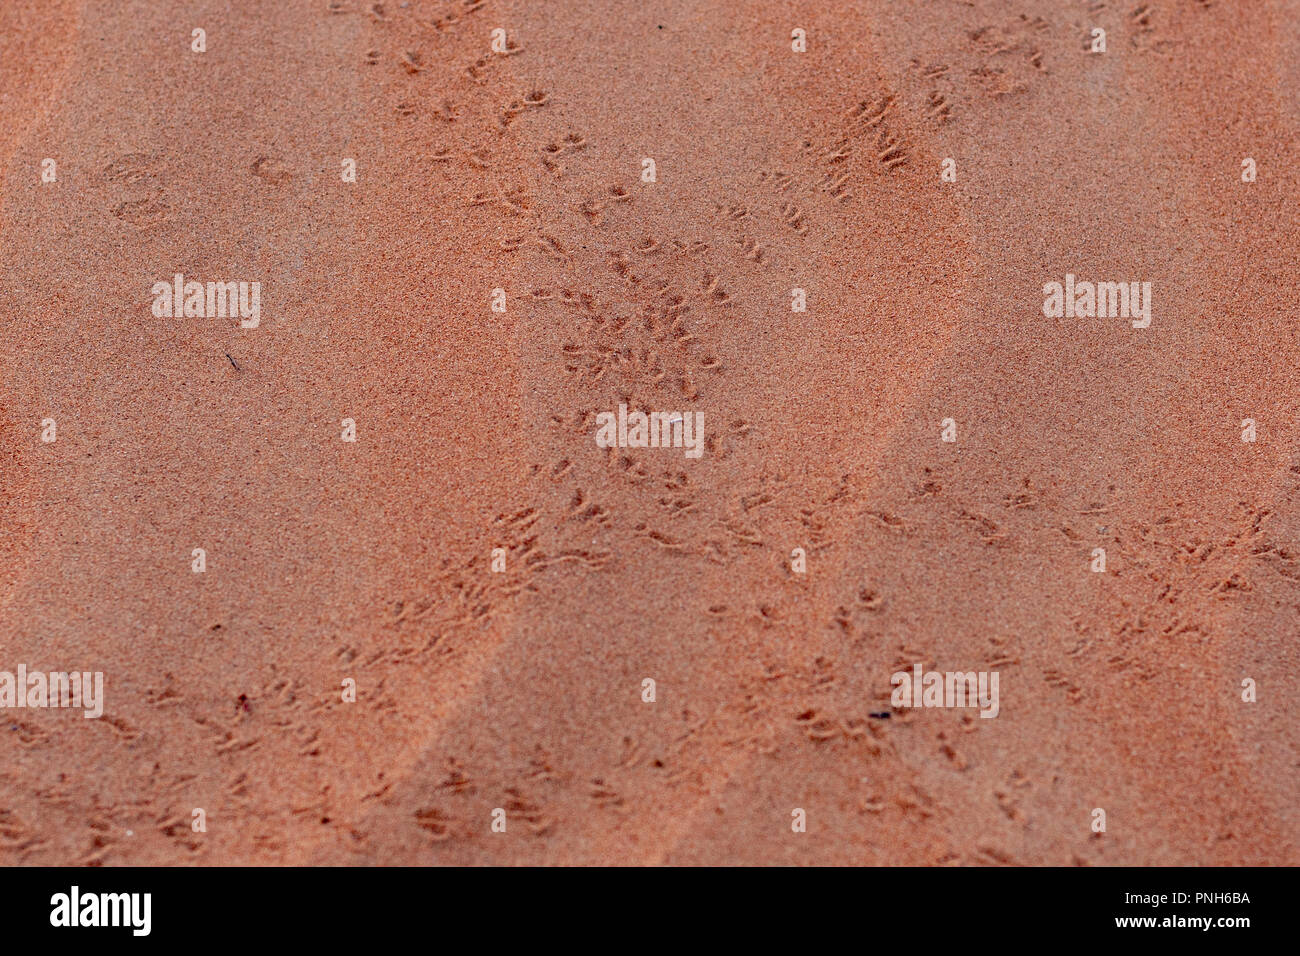 A Close-up of Footprints in the Desert Sand - Stock Image